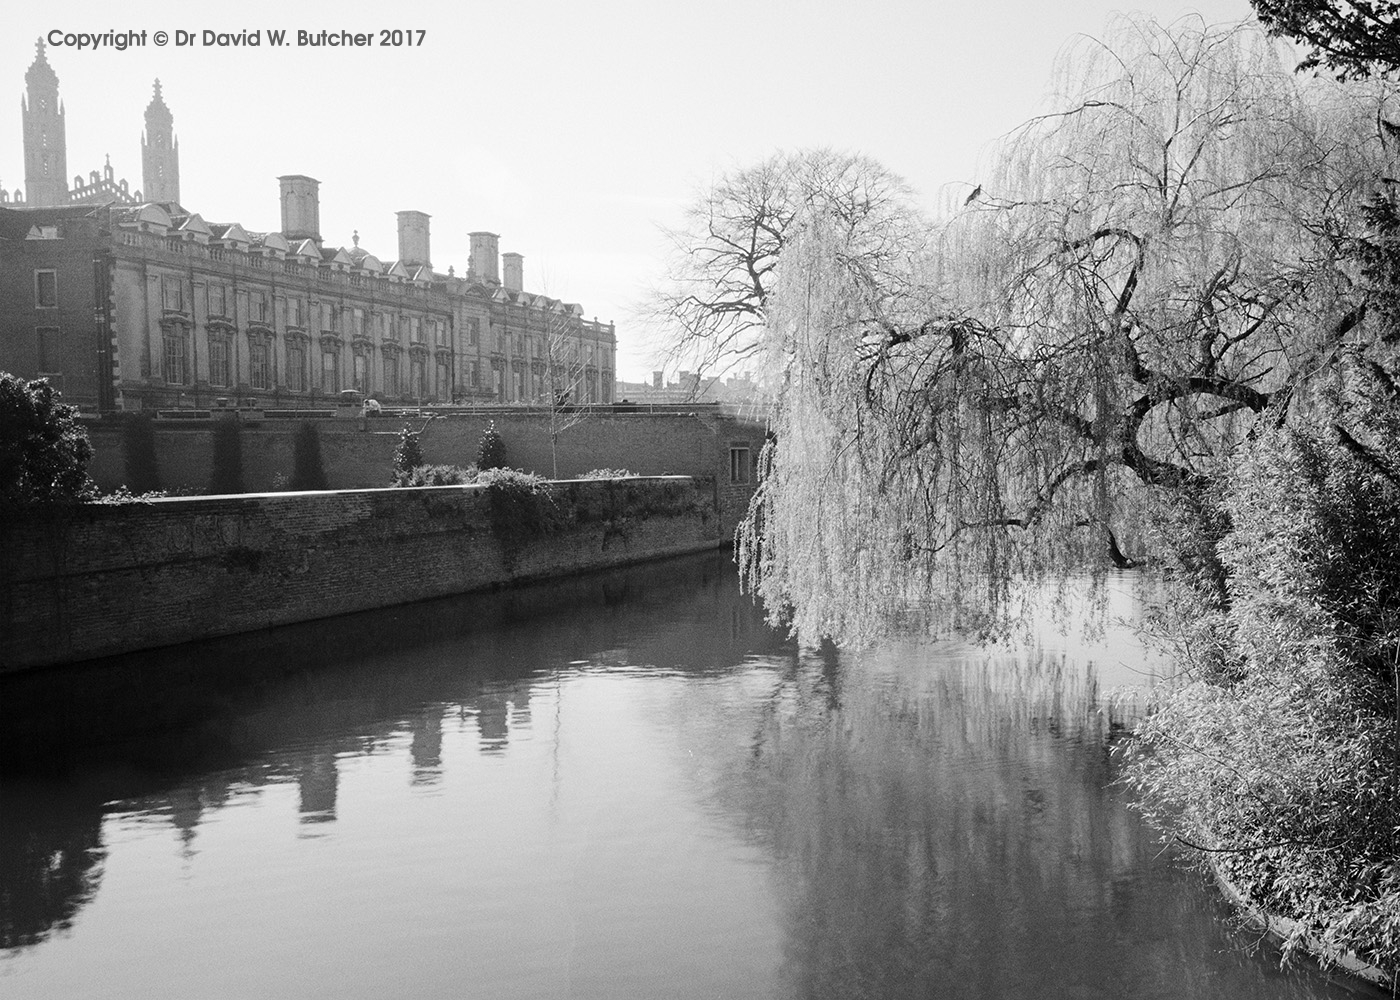 Cambridge Clare College and River Cam, England